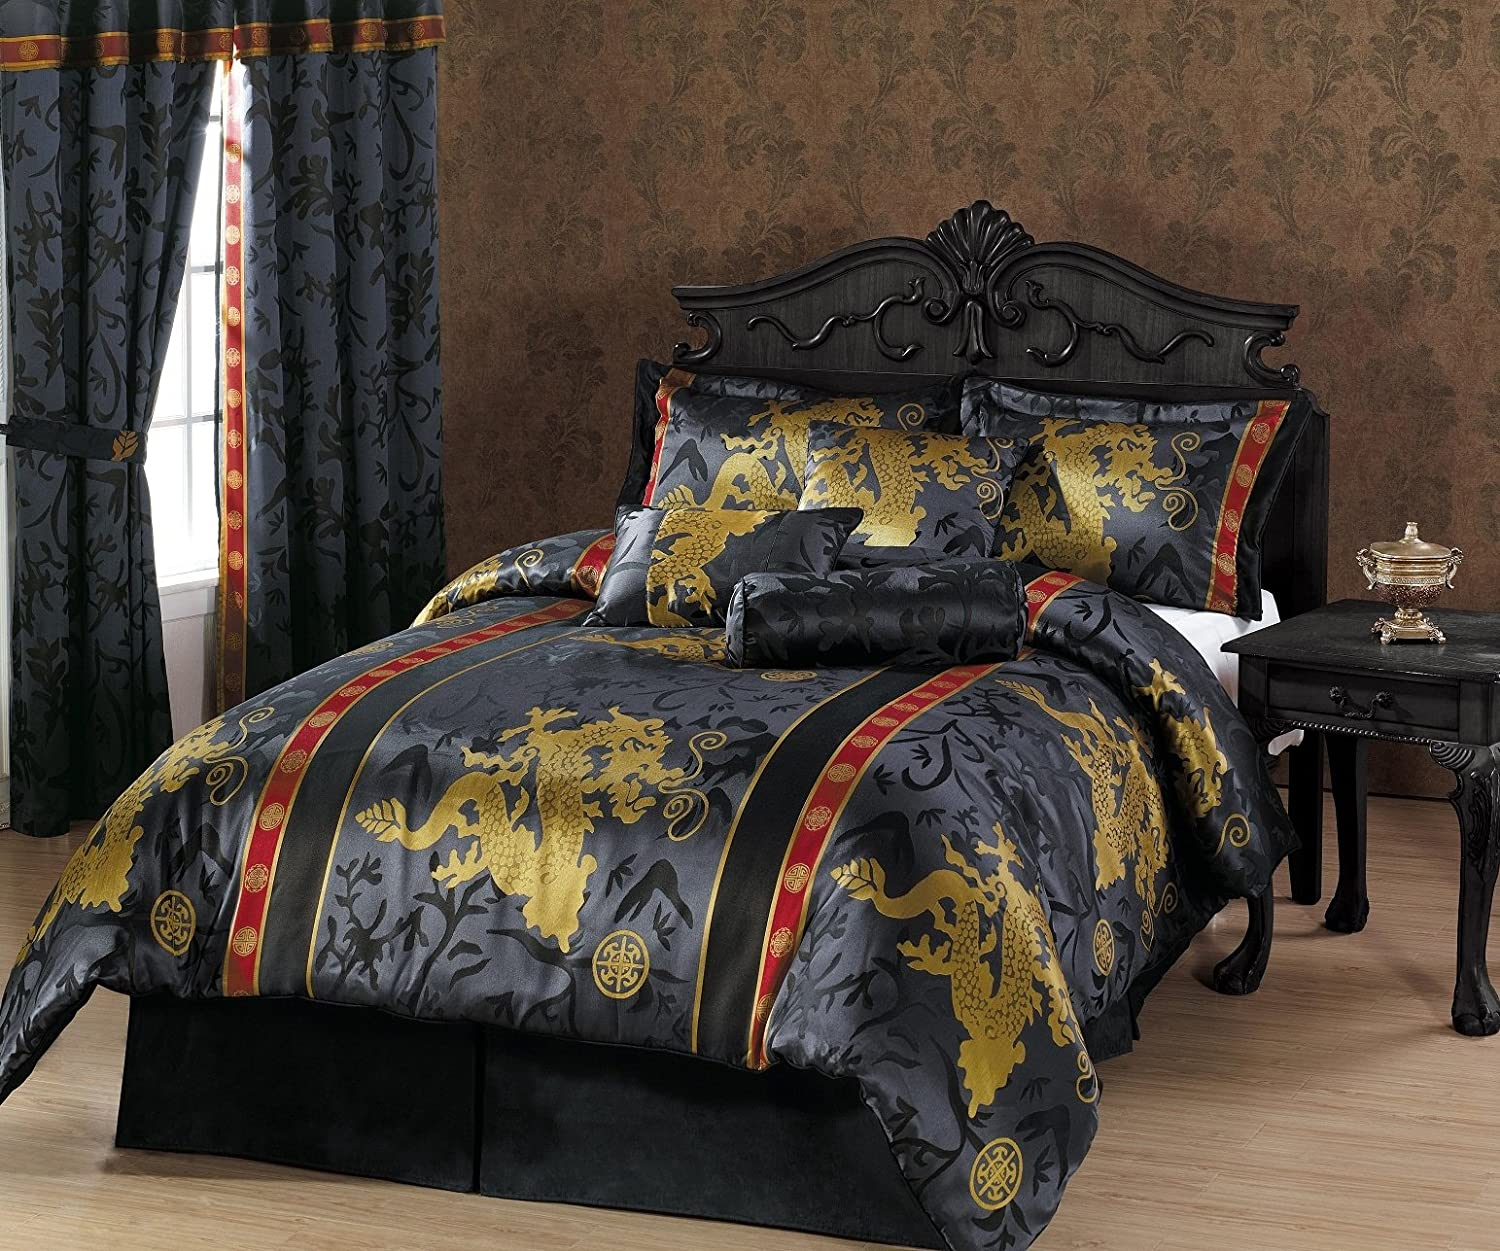 Dragon Bedroom Dragon Decor Ideas - Chinese dragon comforter set